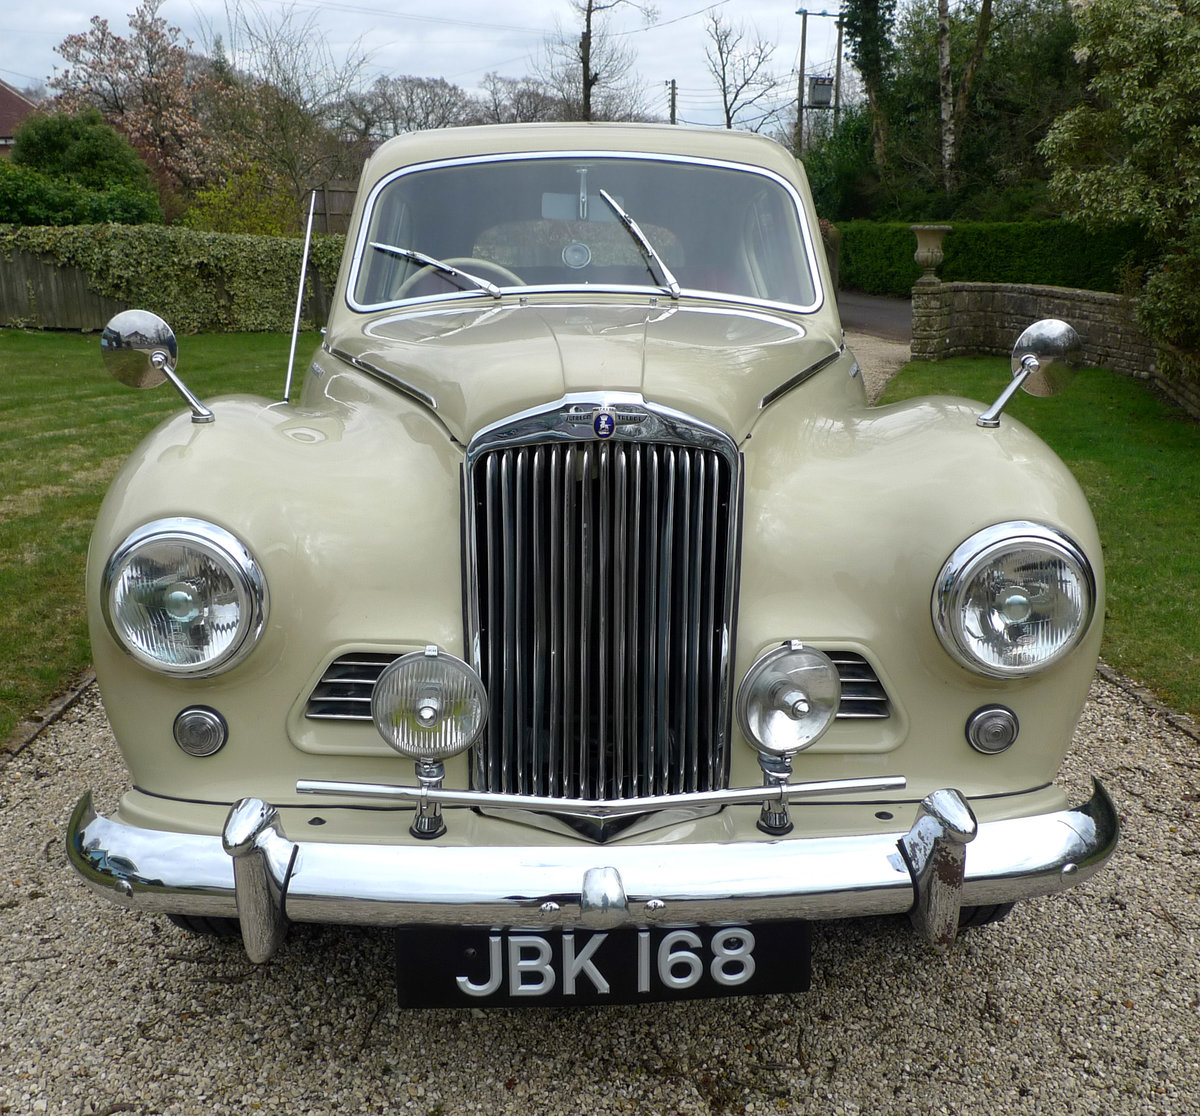 1953 Sunbeam Talbot 90 Mk11A saloon For Sale (picture 1 of 6)